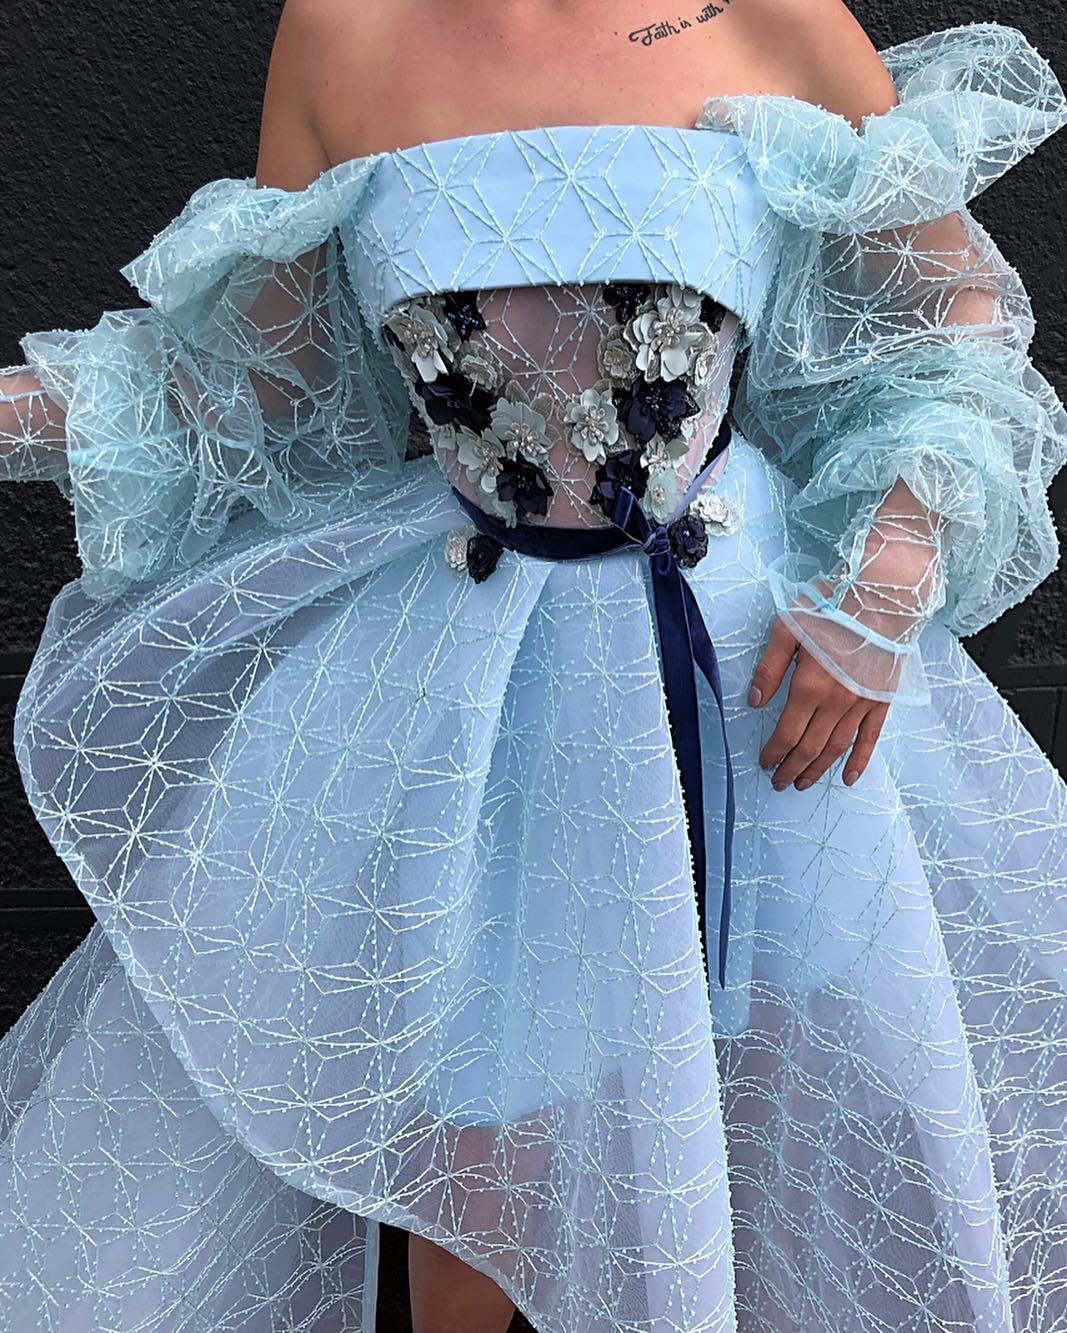 gowns for women | gowns for girls | gowns for sale | gowns for weddings | gowns for prom | gowns dresses | gowns beautiful gowns | gowns images | gowns for girls | gowns design | gowns fashion show | gowns baby blue